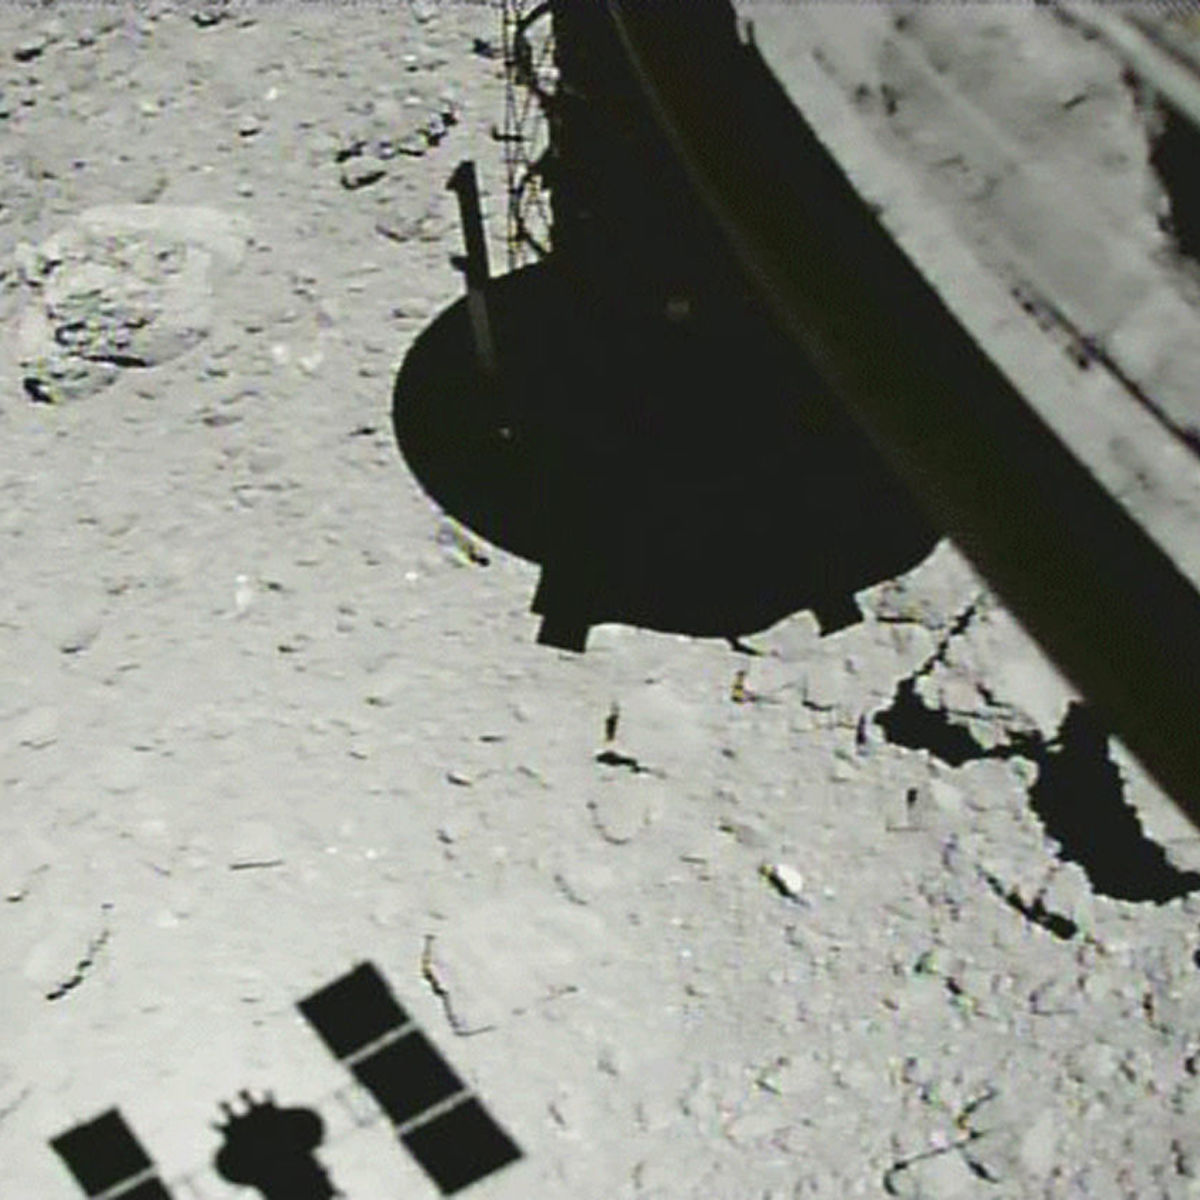 Hayabusa-2 lingers over the asteroid Ryugu, just 21 meters from the surface, in this image taken on October 25, 2018. Credit: JAXA